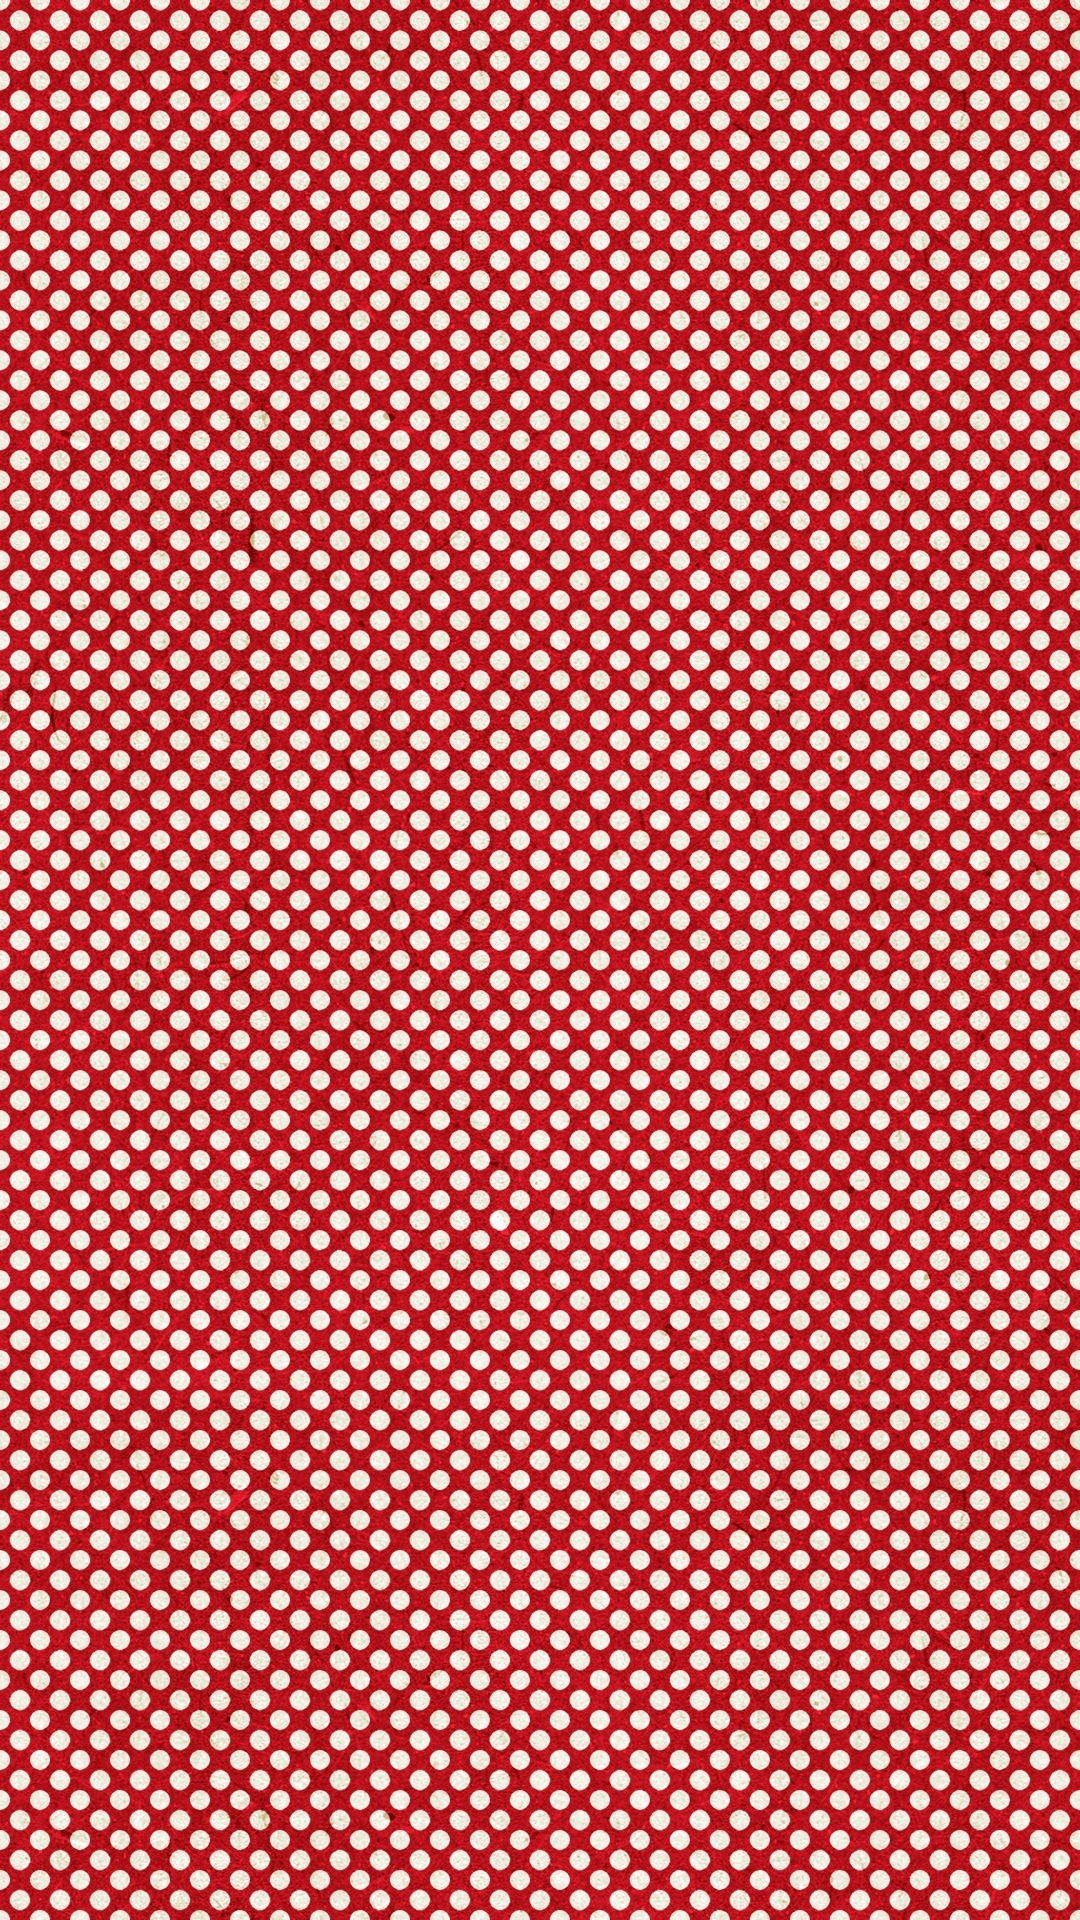 iPhone 6 Plus Wallpaper Red Pattern 06 iPhone 6 Wallpapers 1080x1920